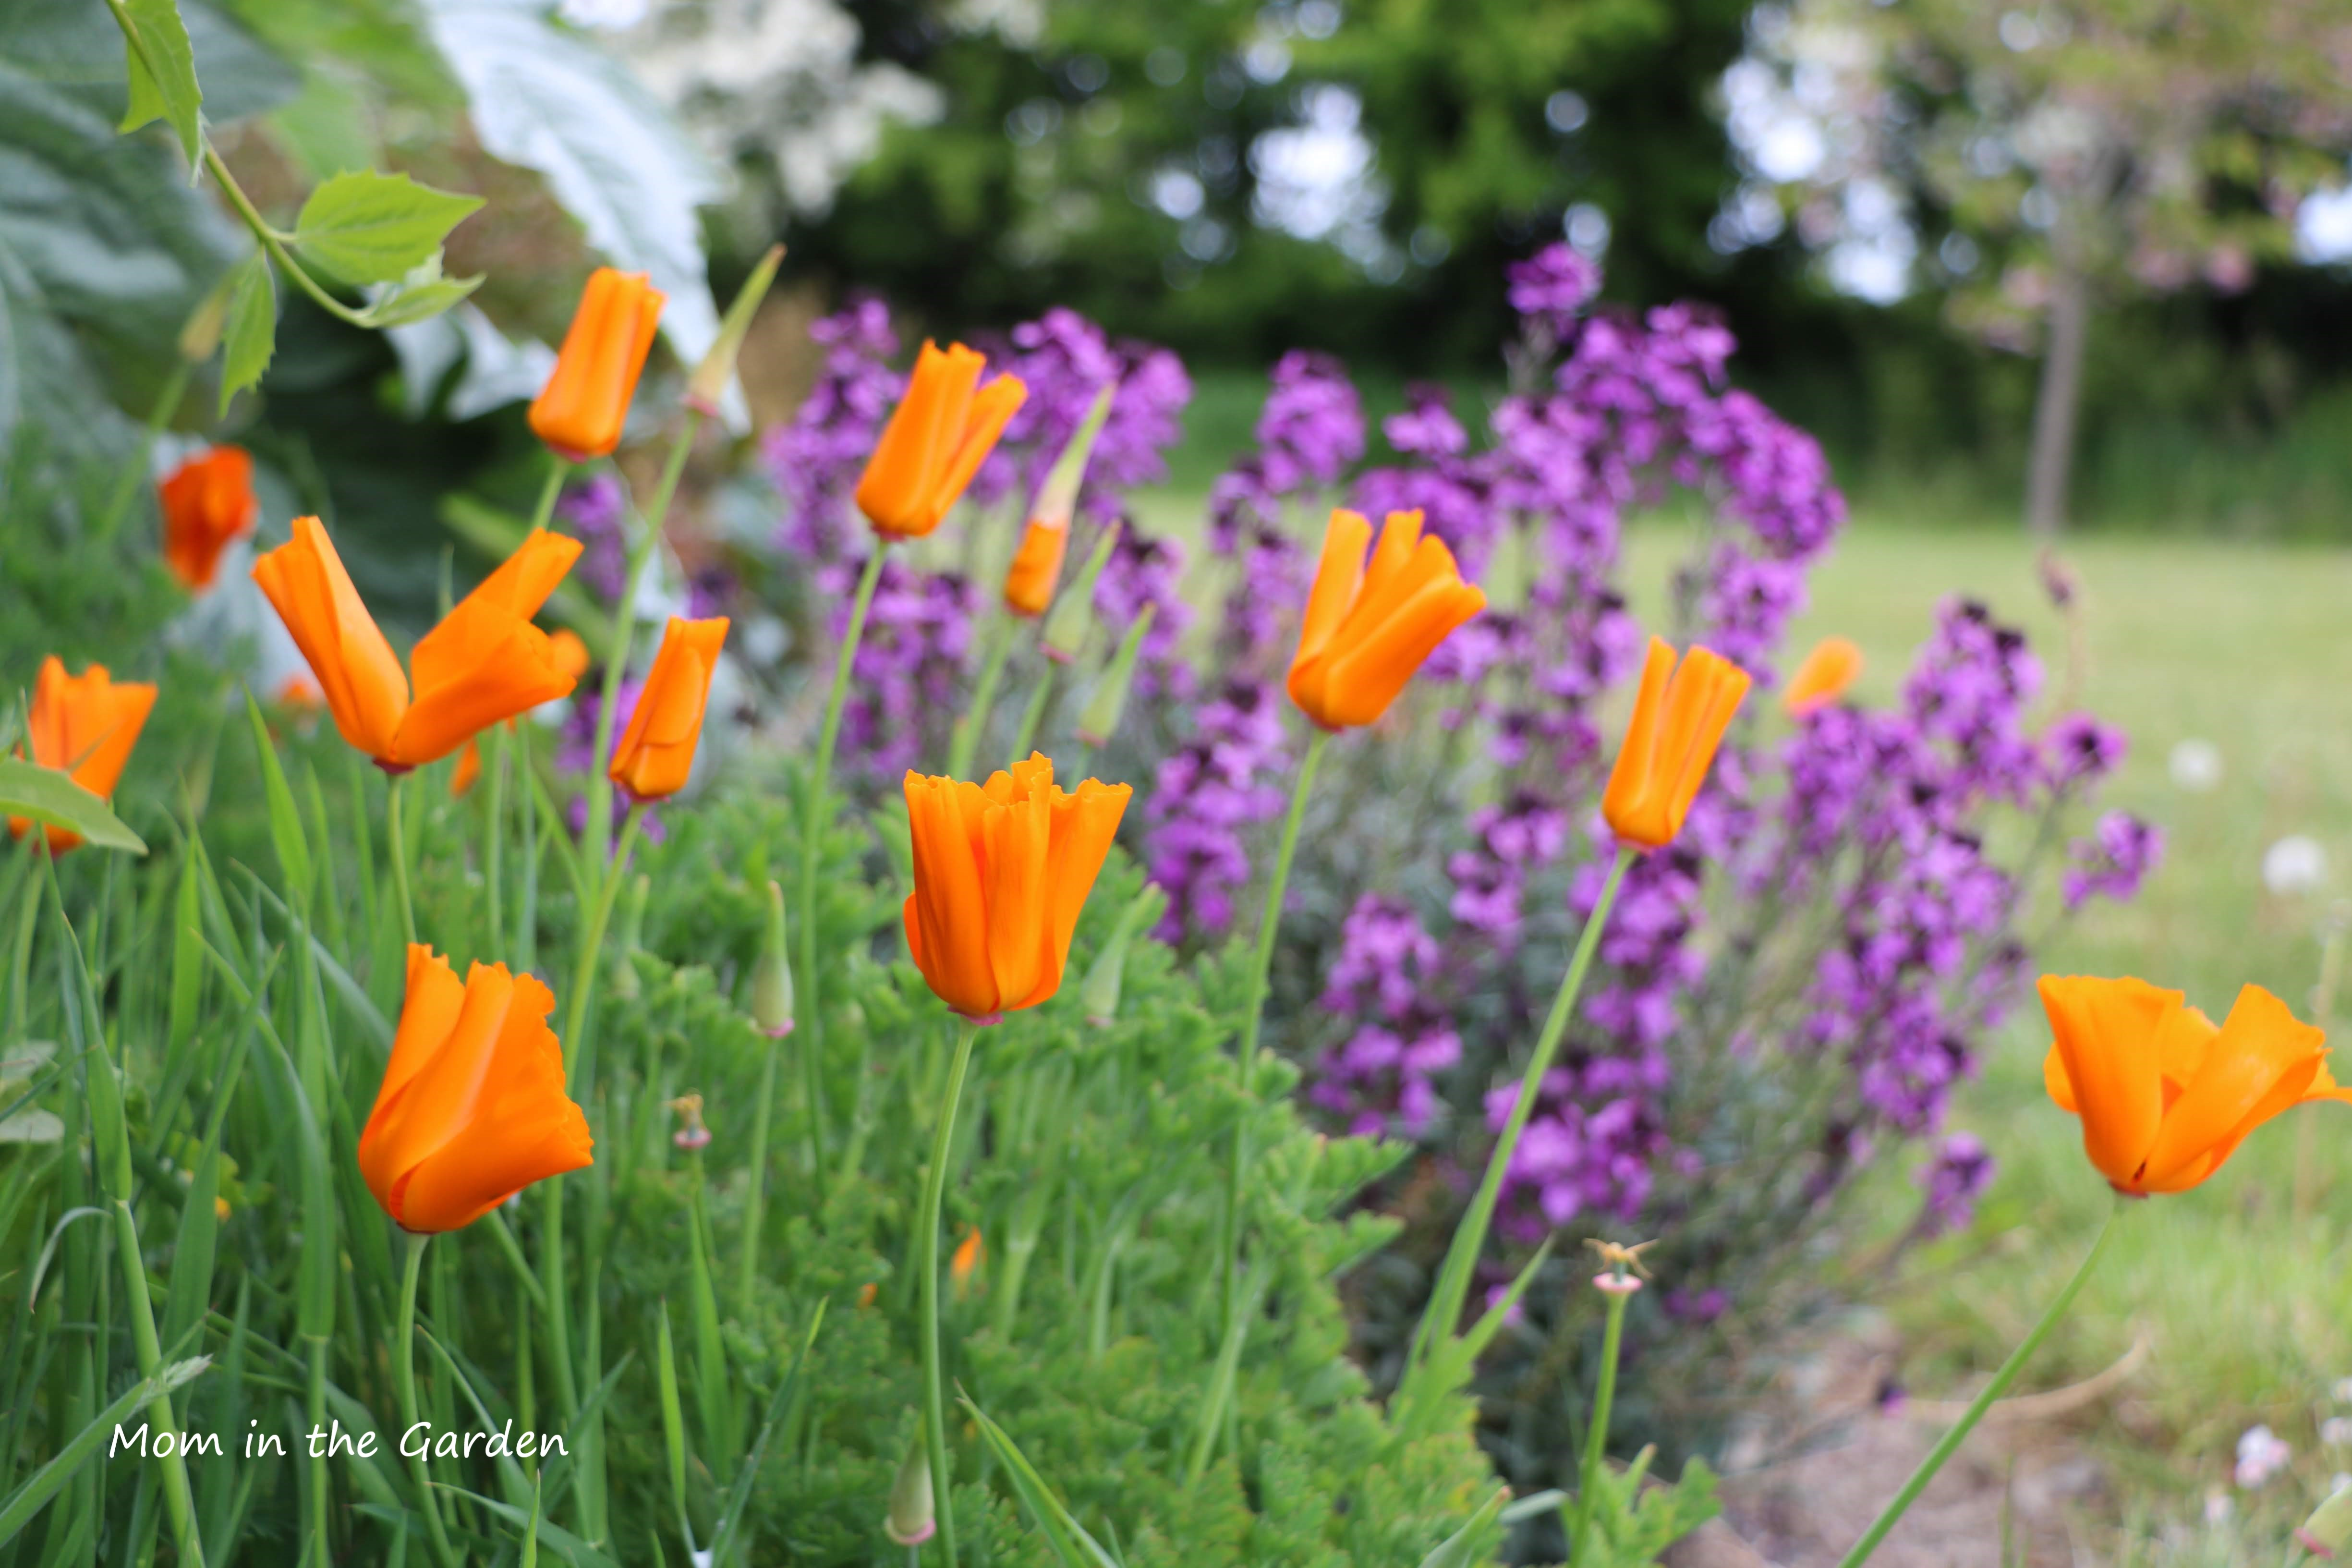 Orange poppies + erysimum